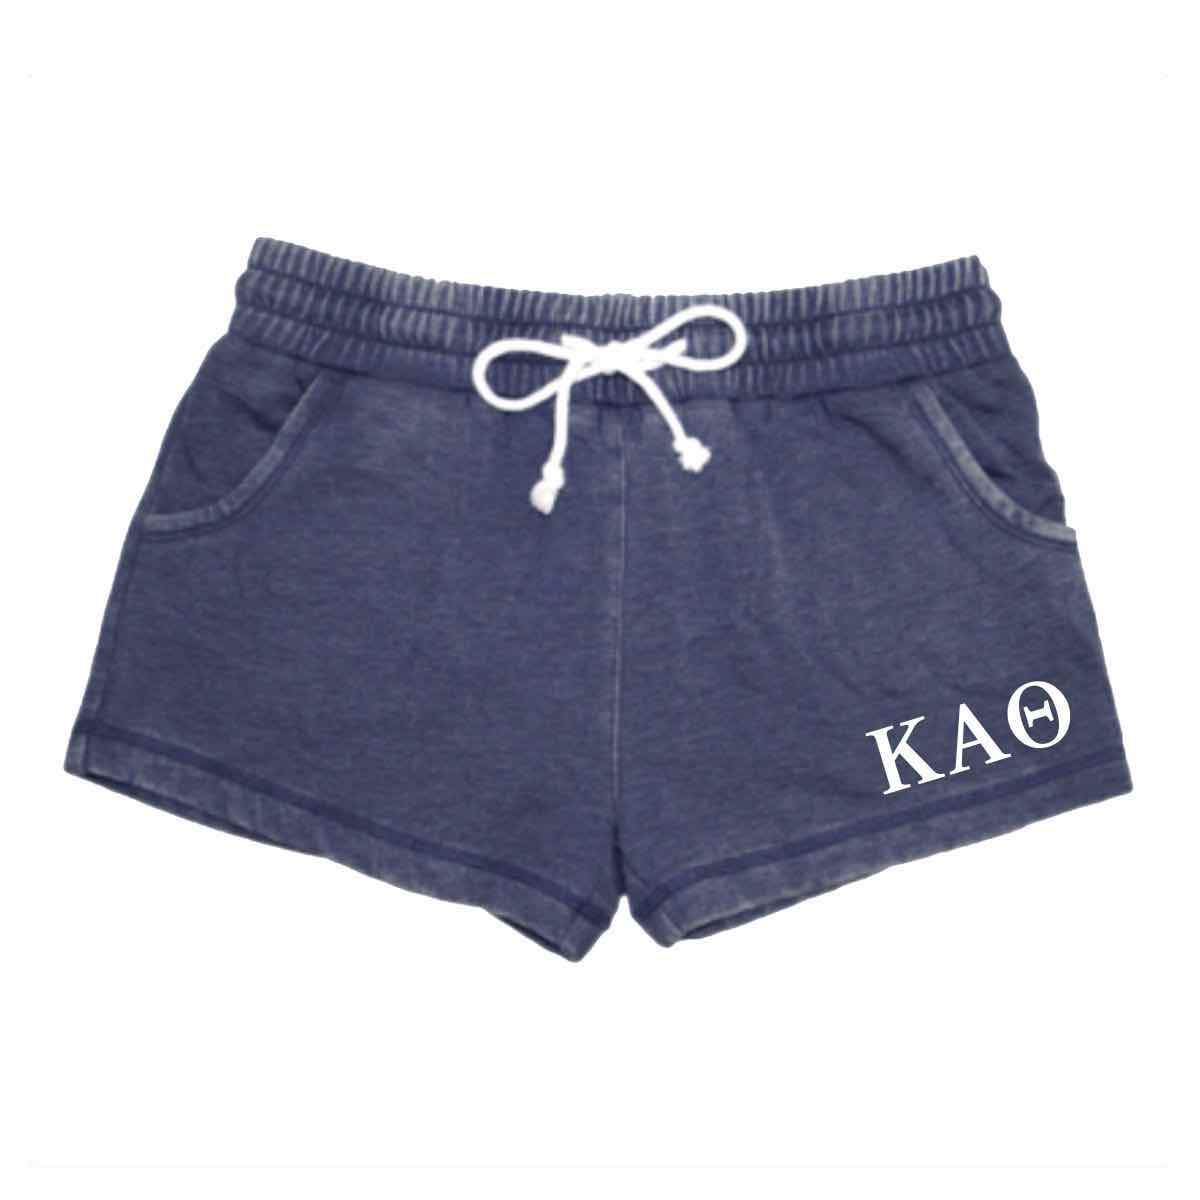 Blue Greek Lettered shorts with pockets